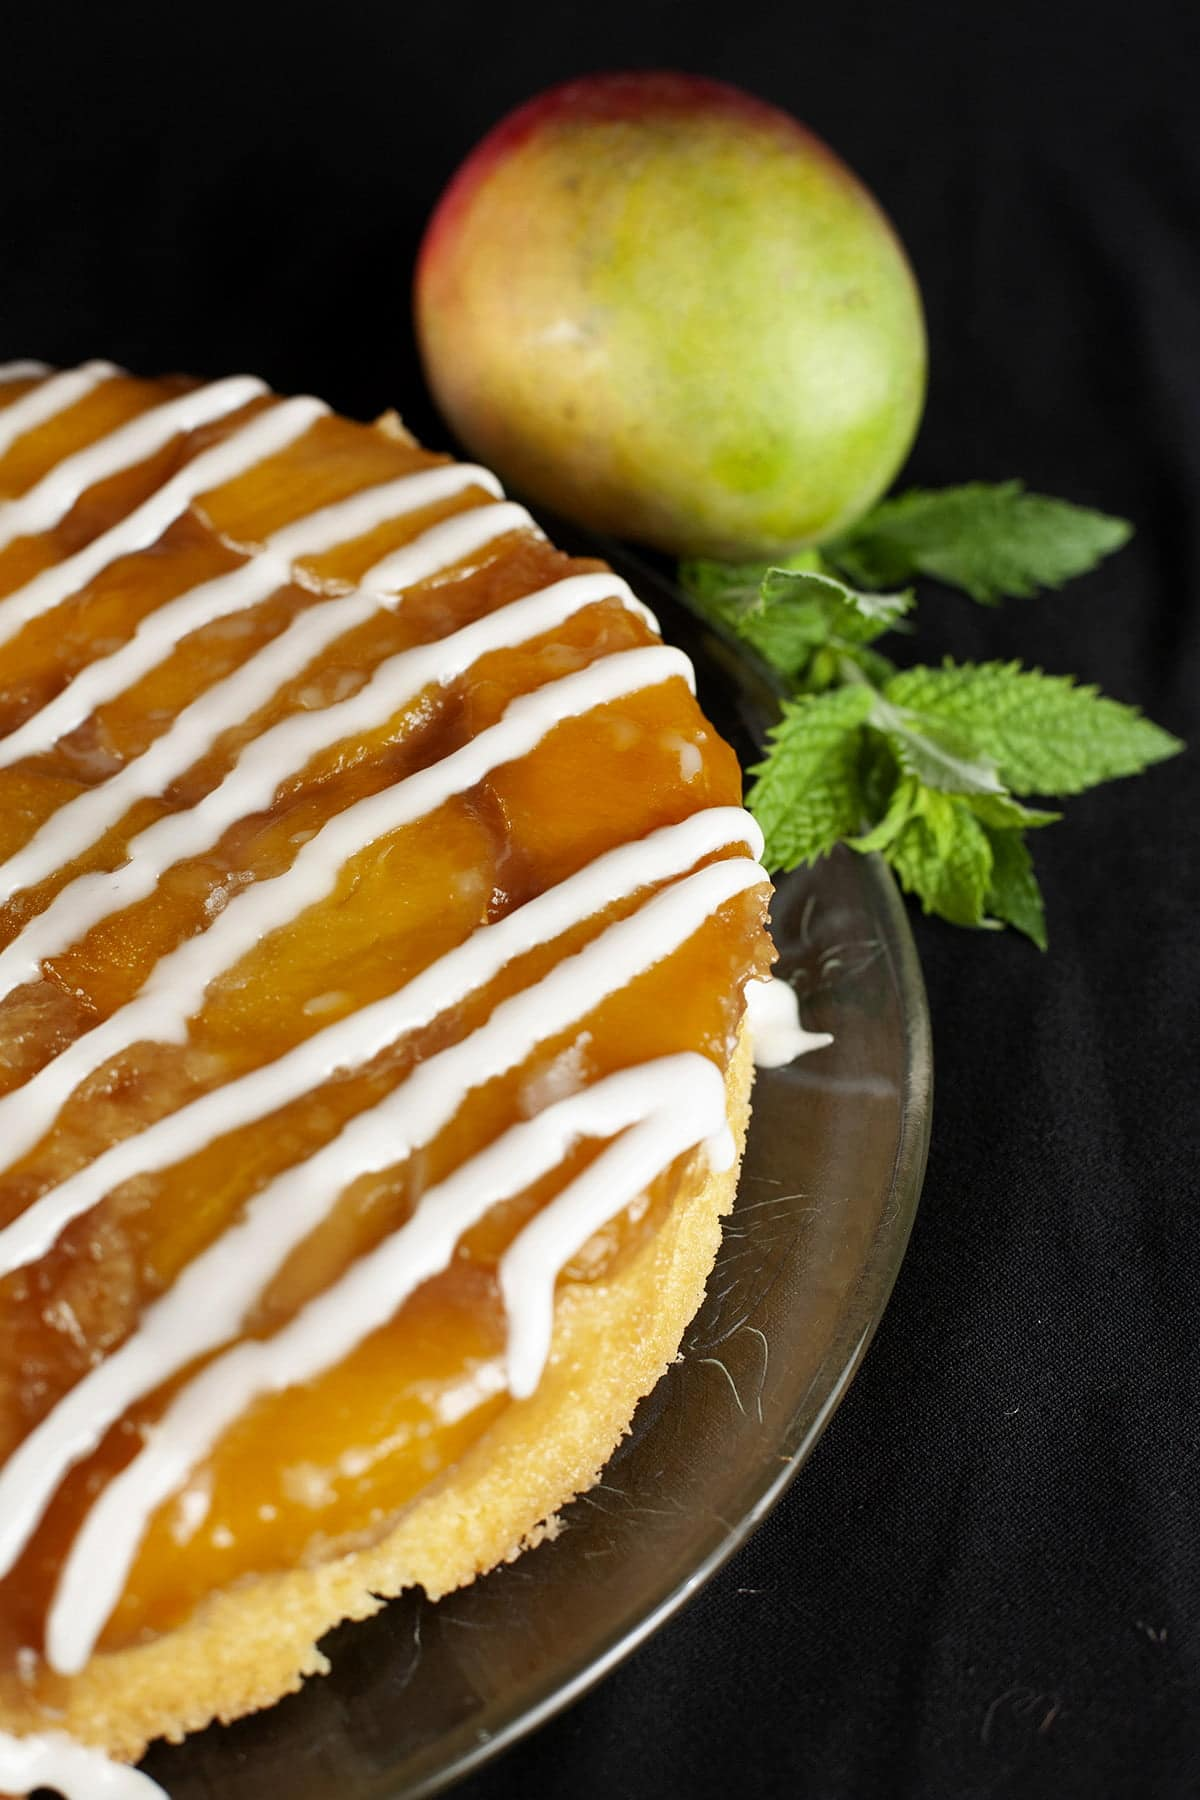 A mango mojito upside-down cake: a large round single layer mango upside-down cake, on a glass plate. It has a white icing drizzled over it, and has a sprig of fresh mint on the side of the plate.